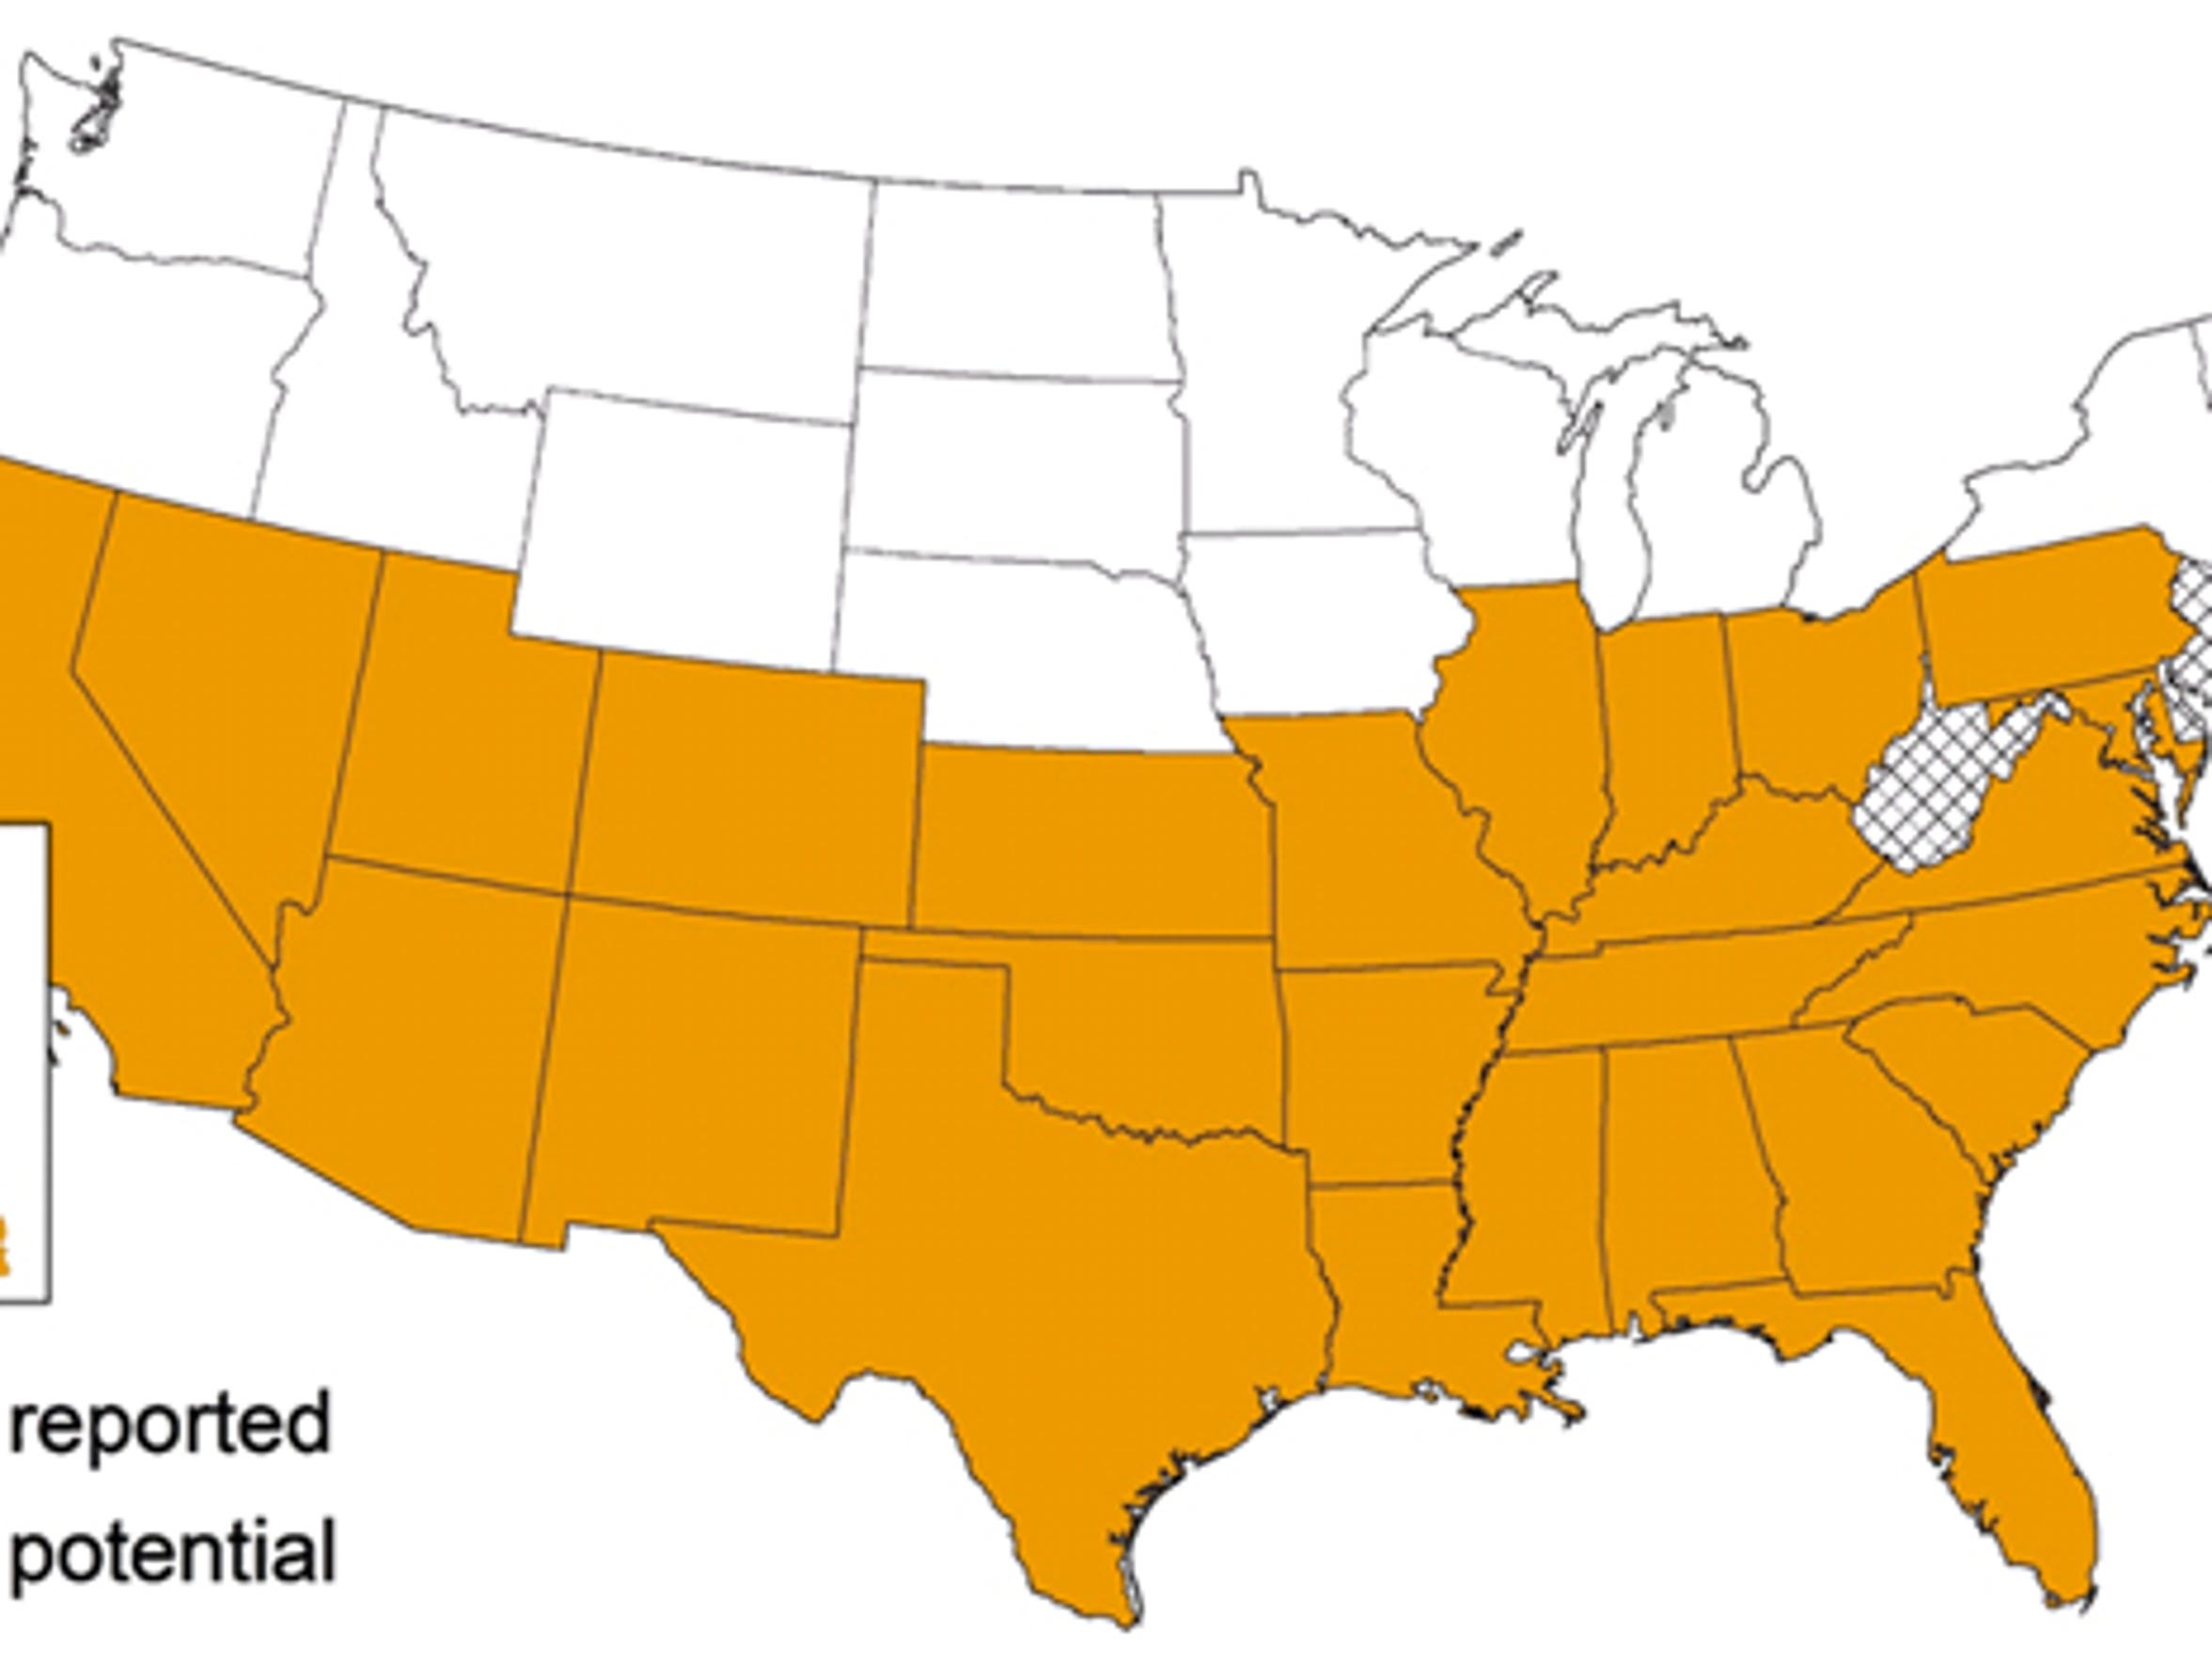 The kissing bug has been found in 27 states in the